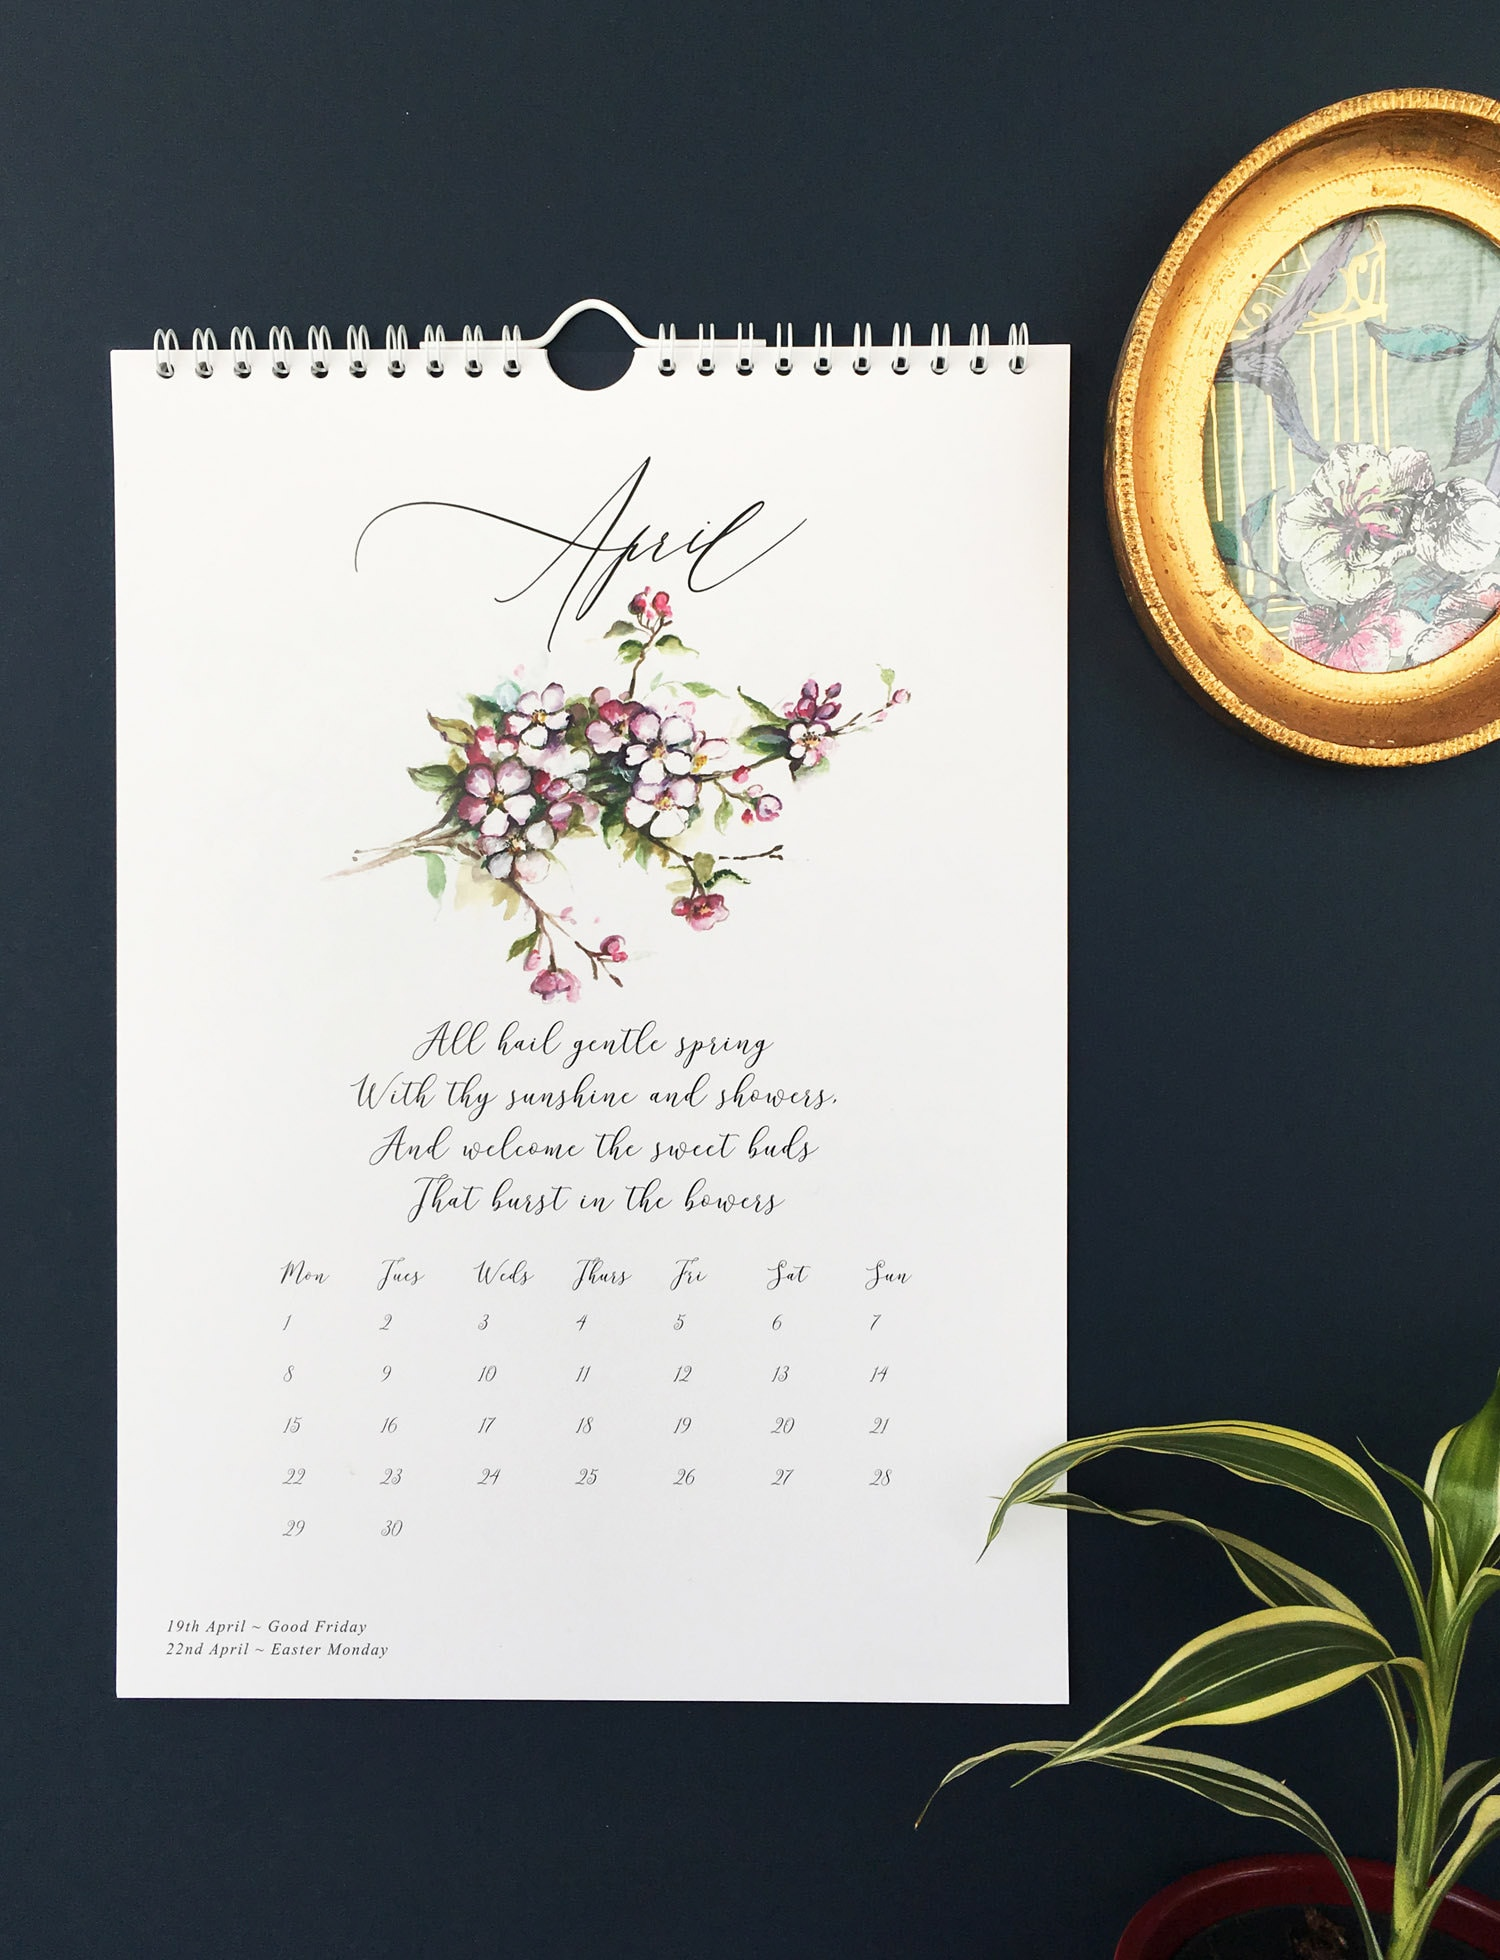 calendar 2019 by moon and tide